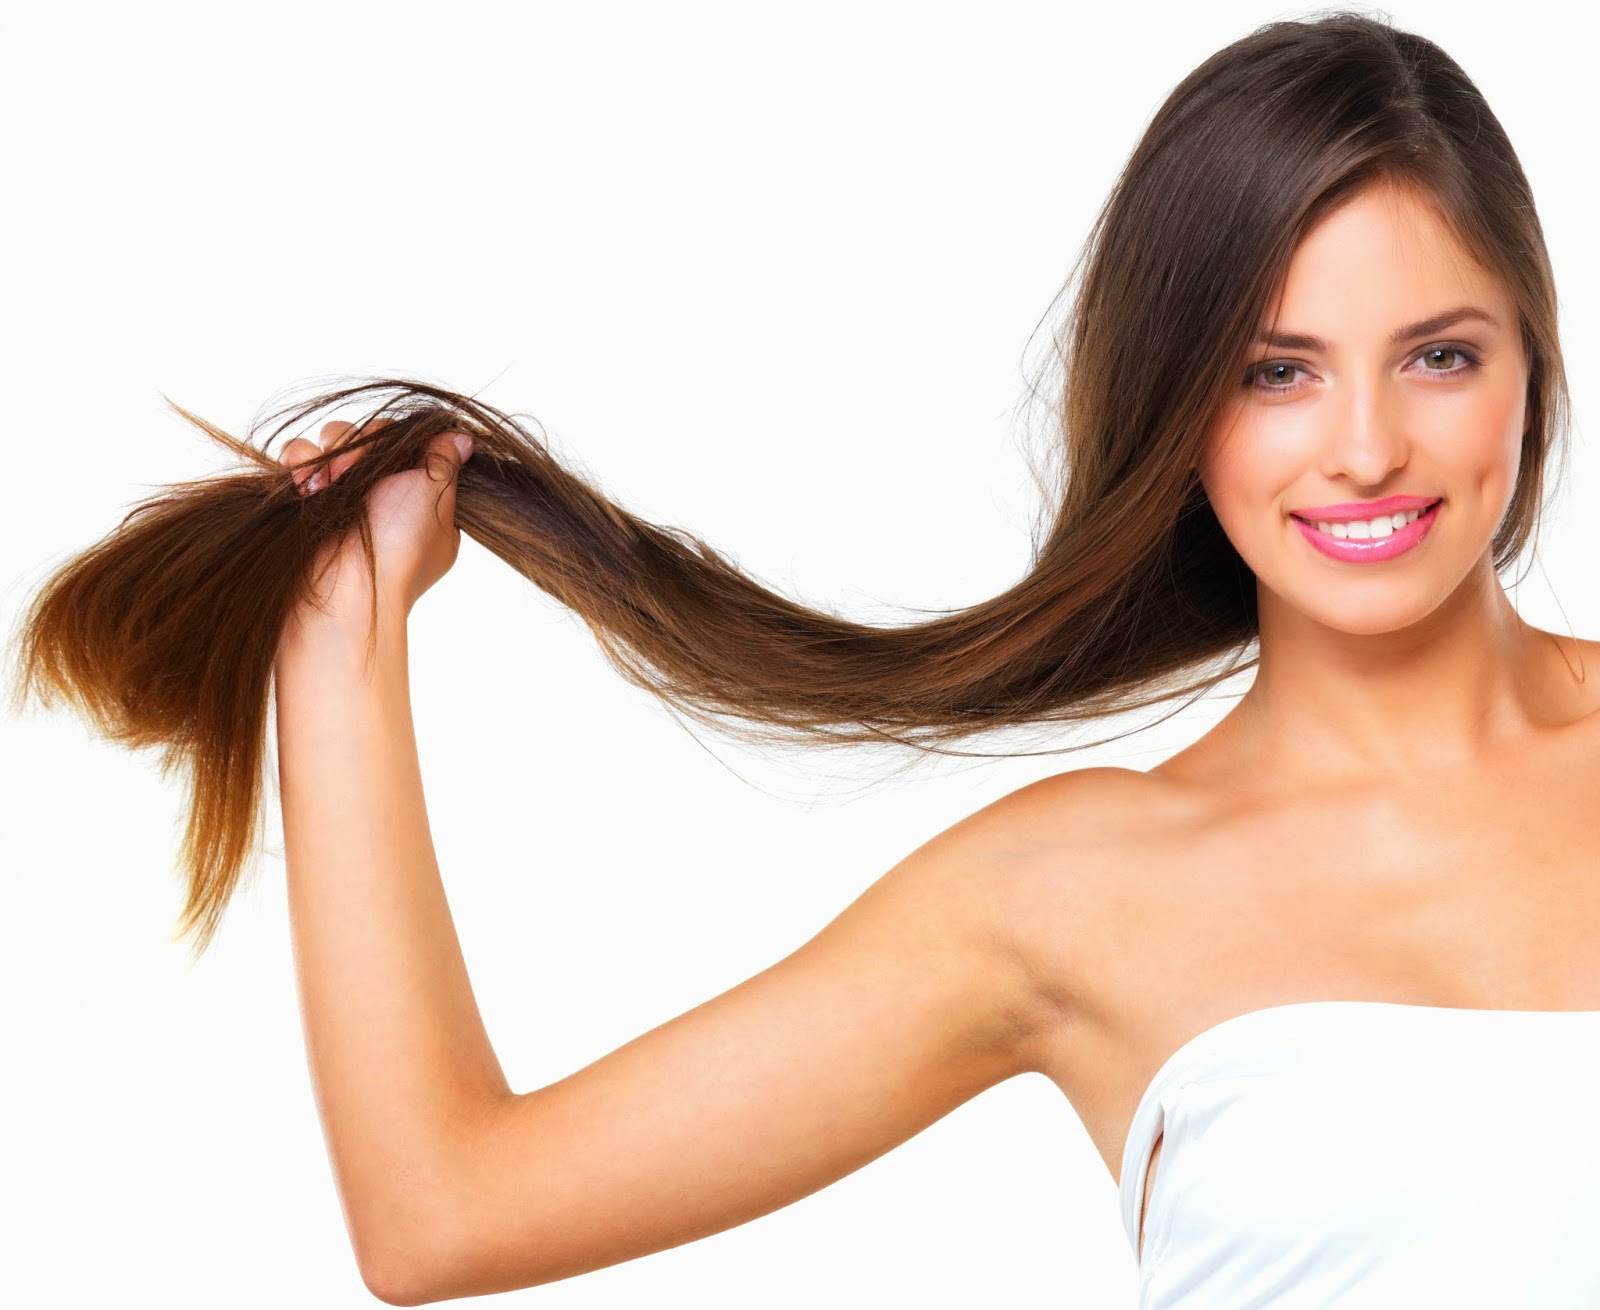 Best Nutritious Food For Healthy Hair